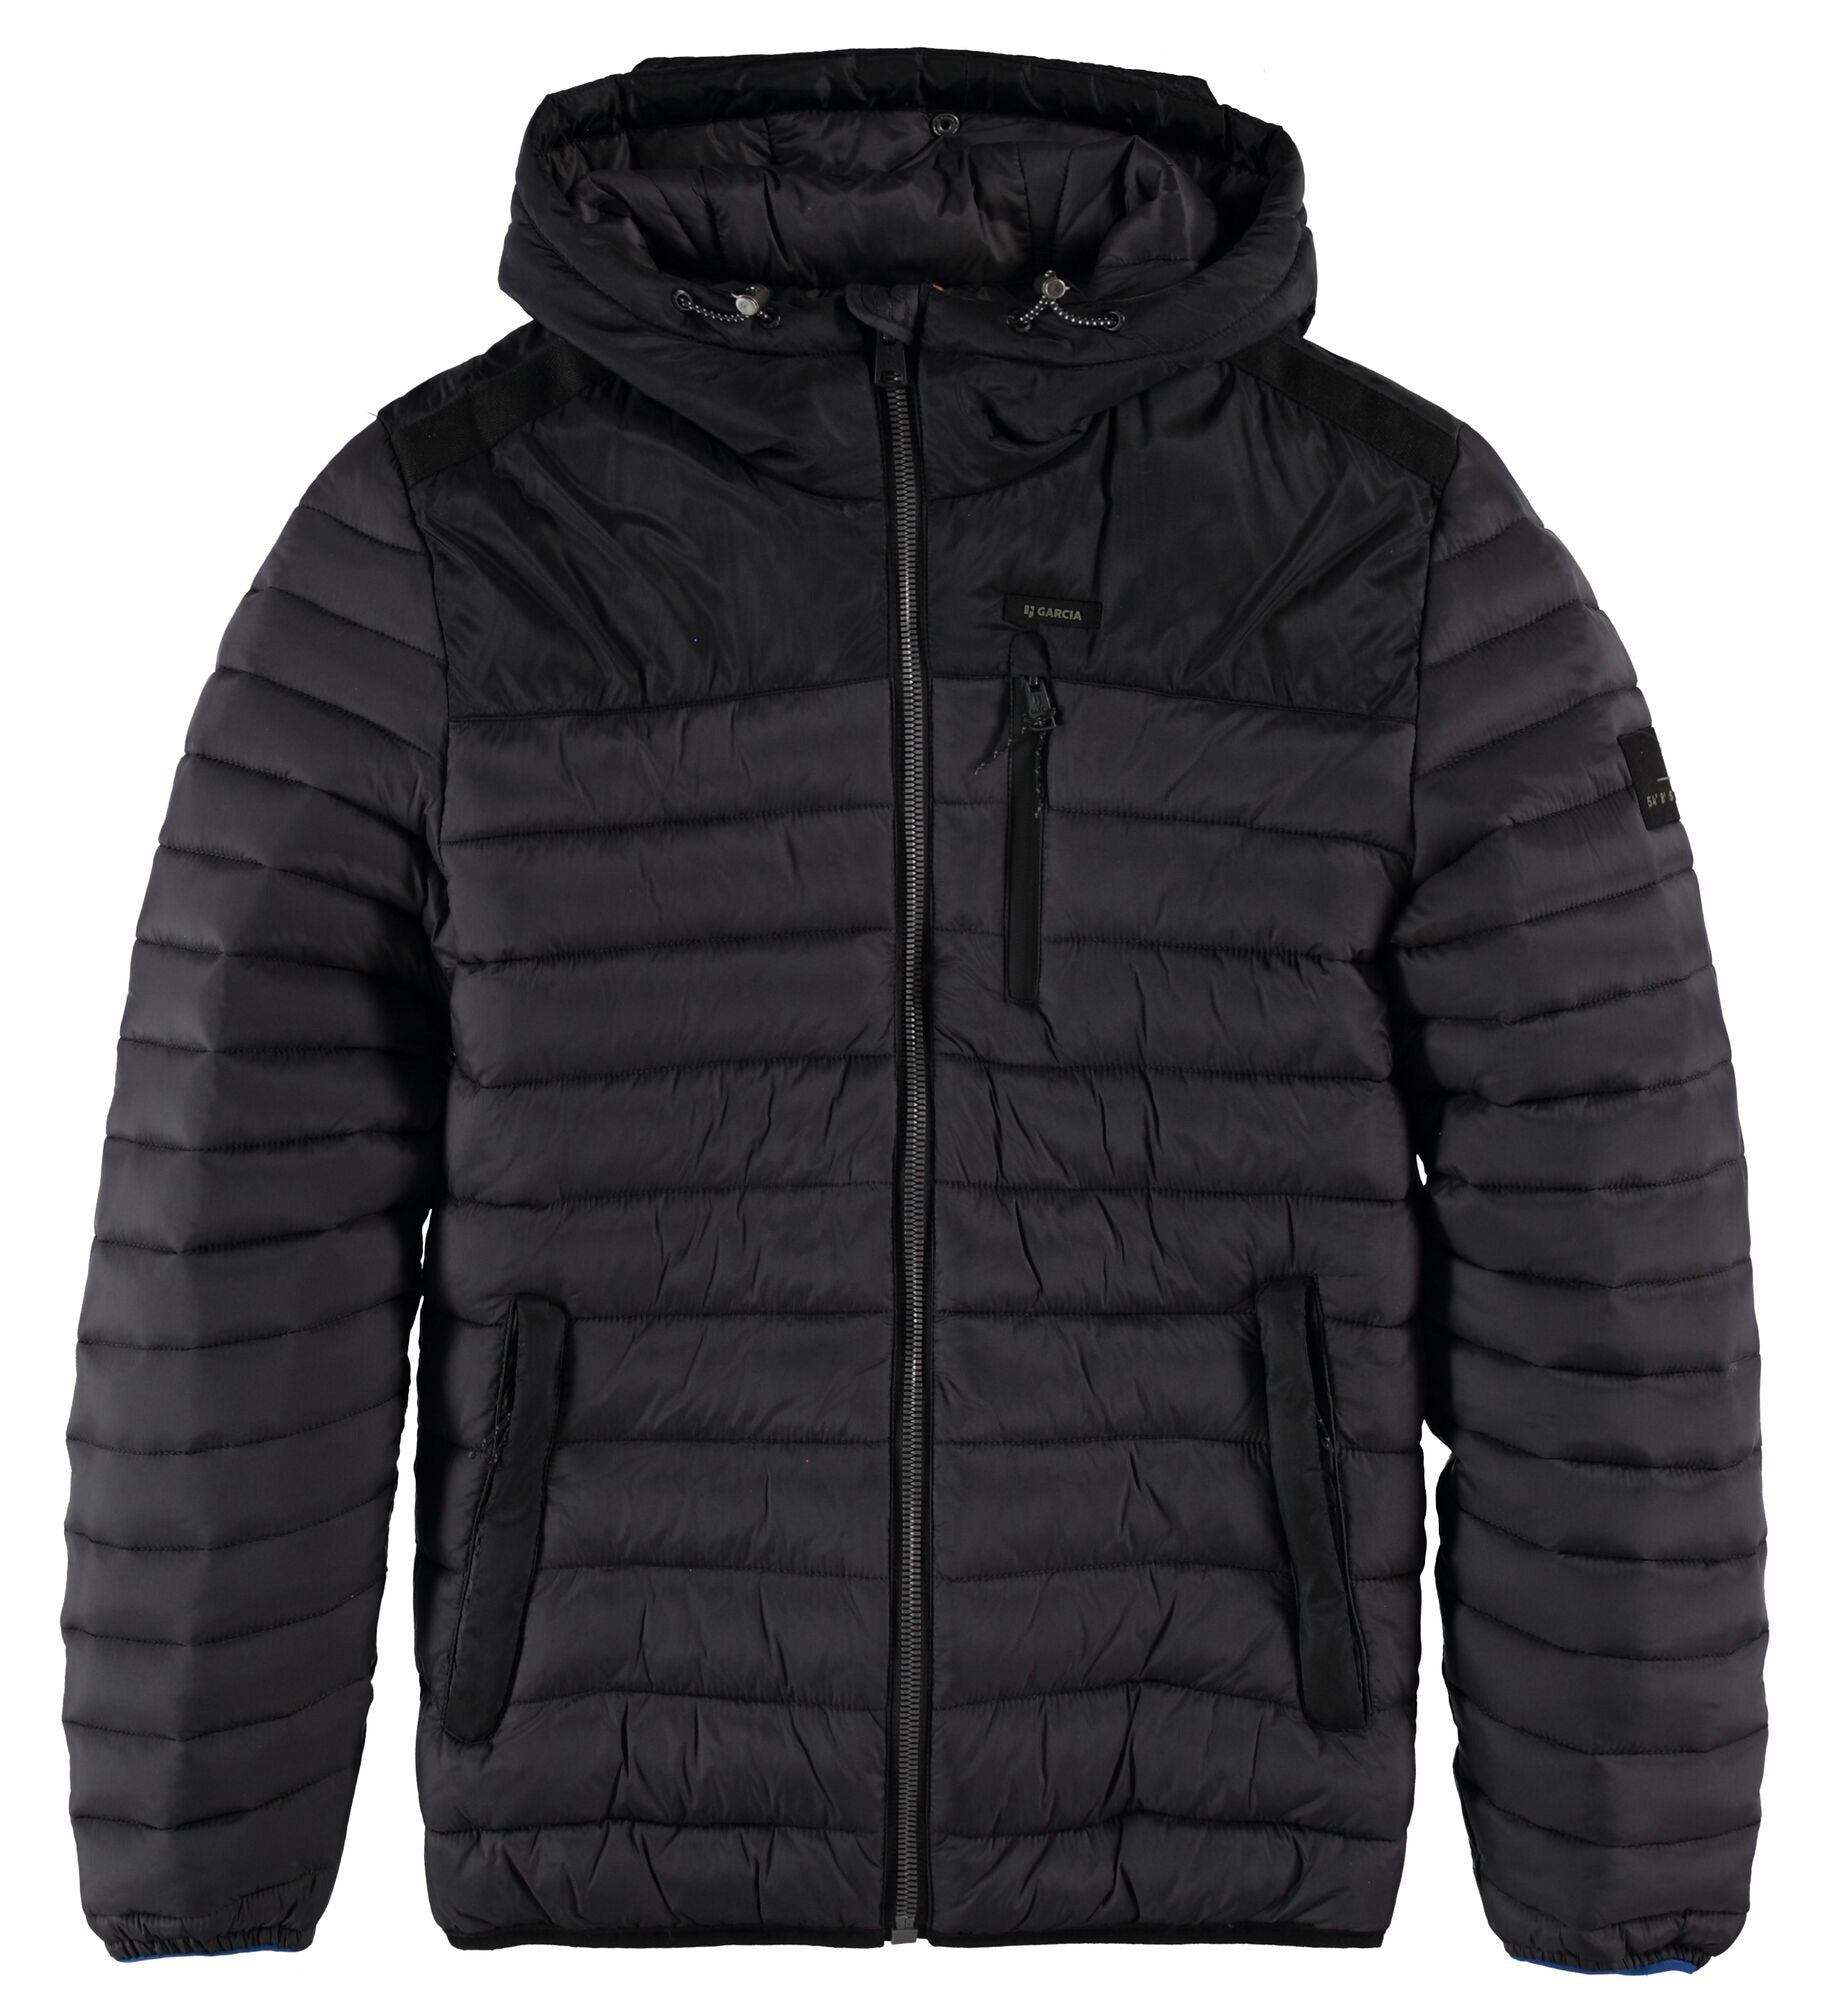 Garcia Men's Outdoor Padded Jacket